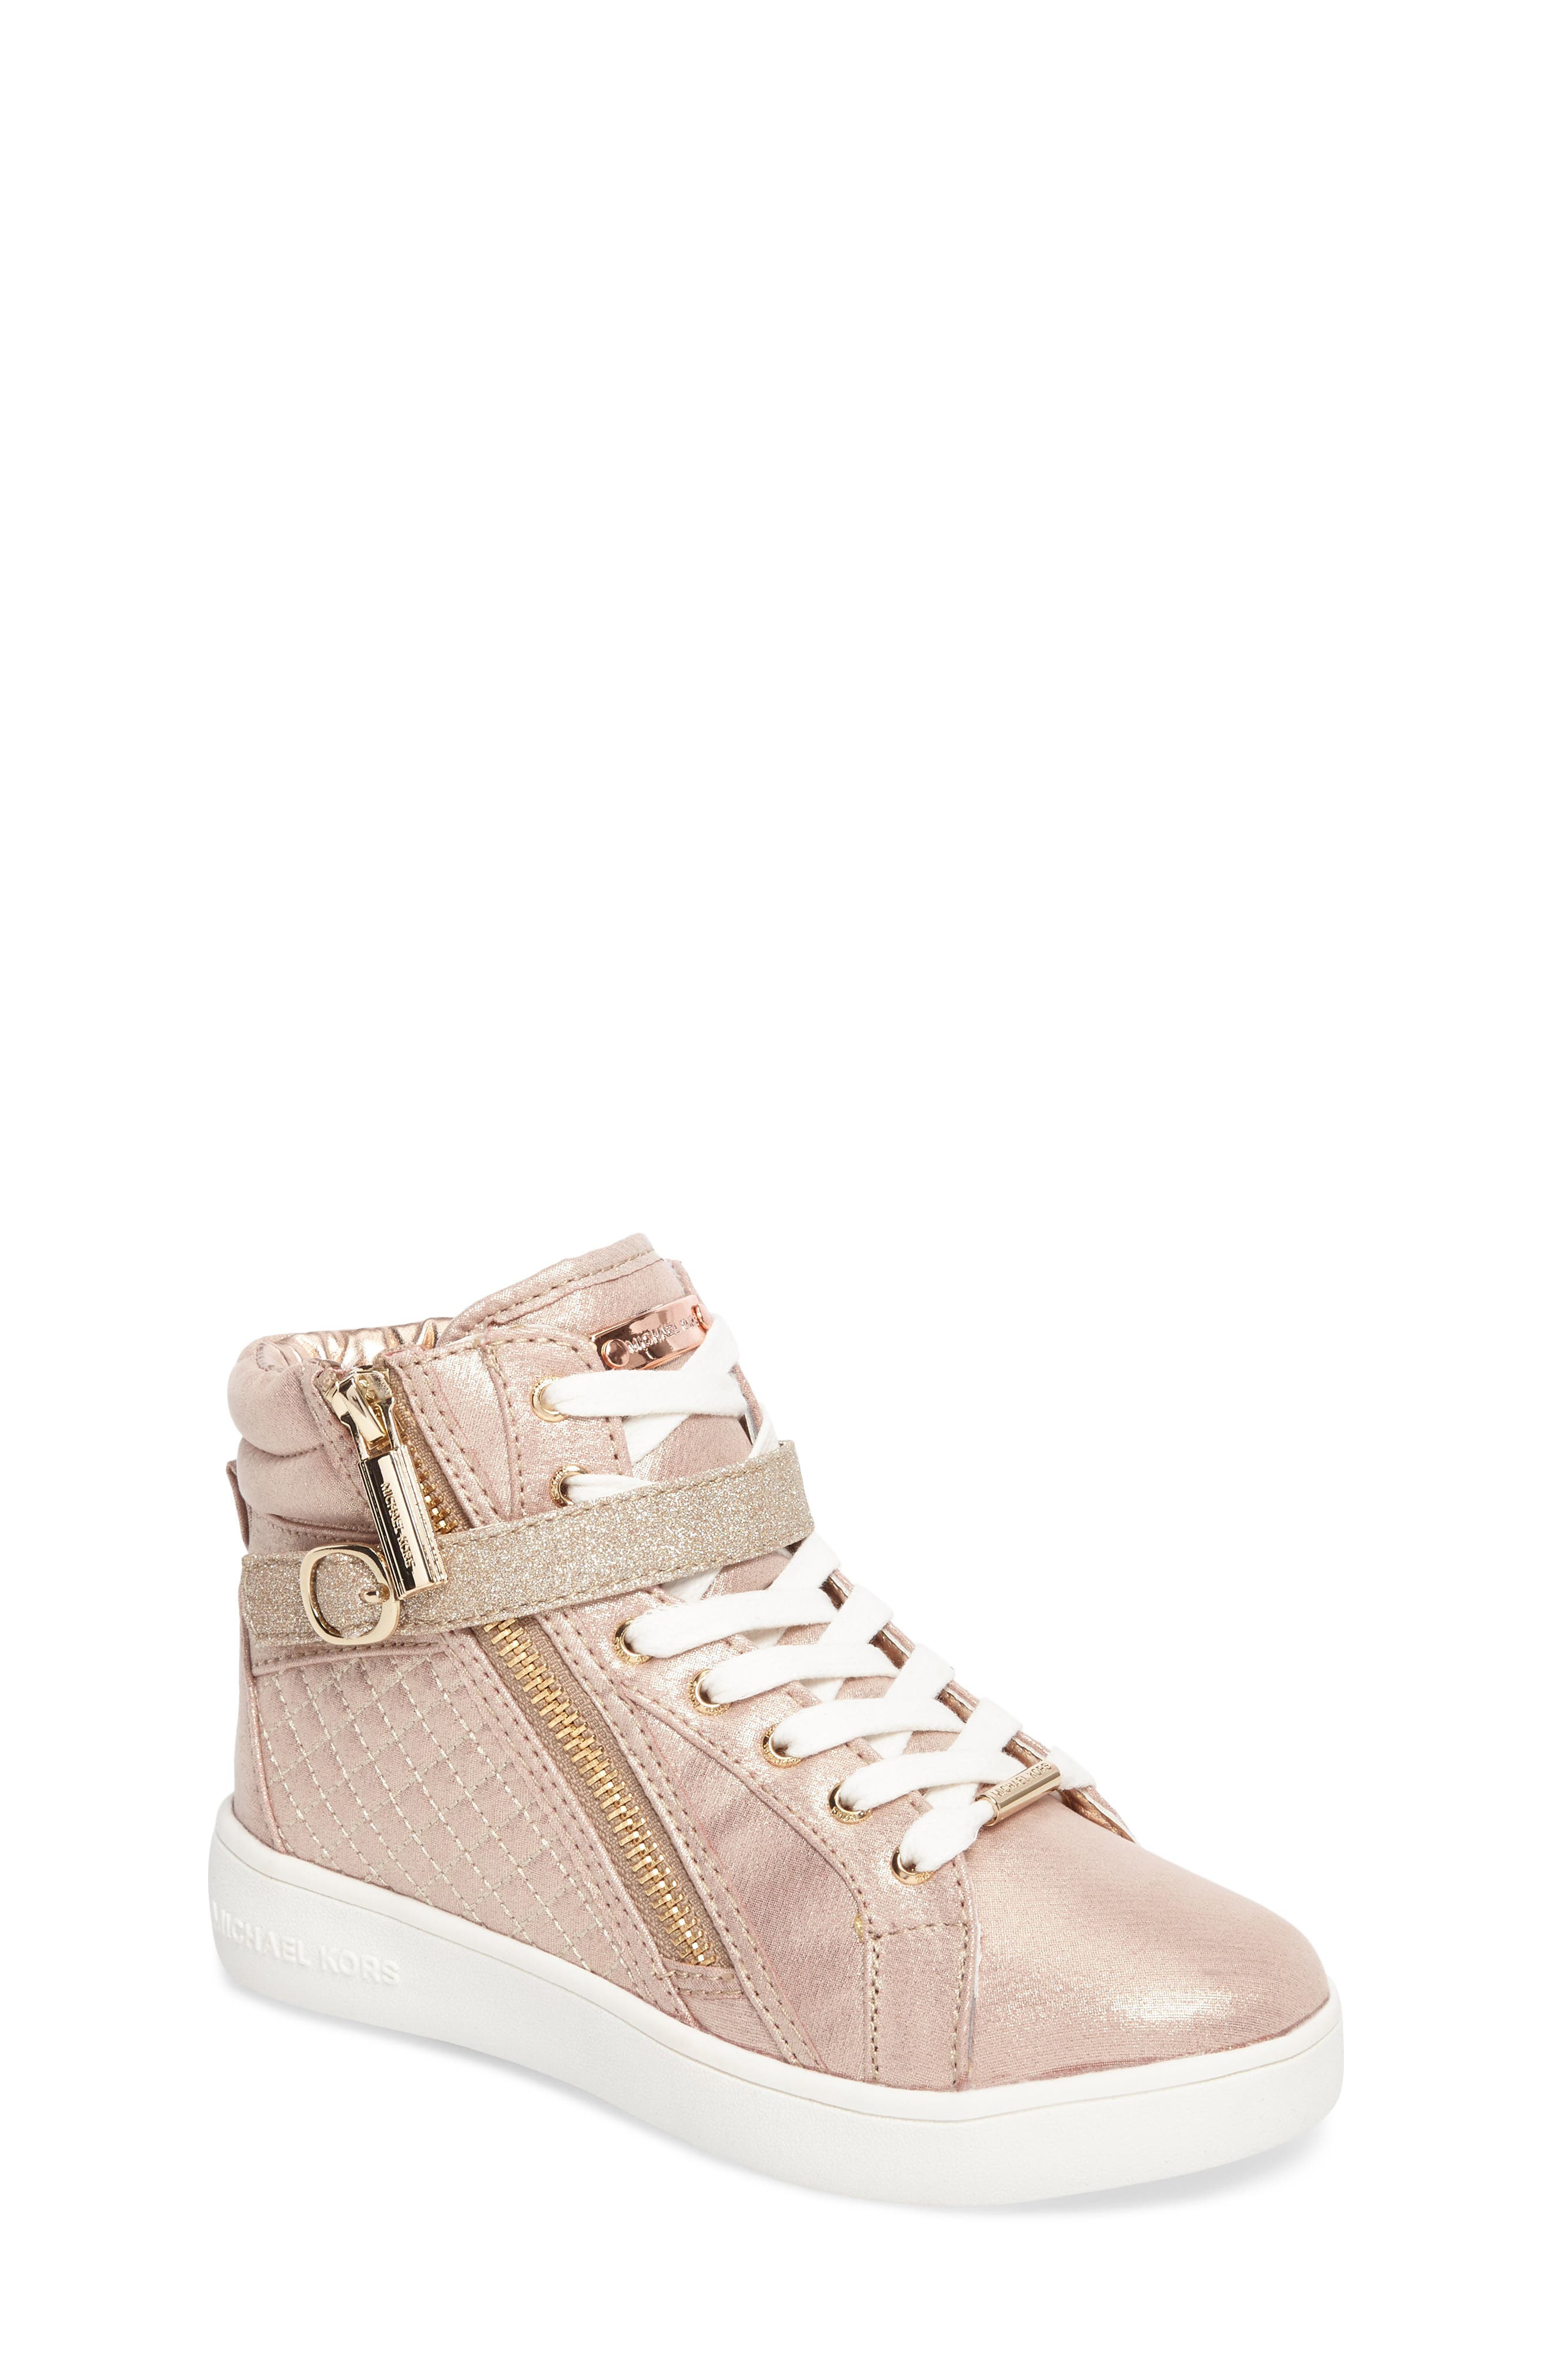 Ivy Rio Glittery High Top Sneaker,                         Main,                         color, Rose Gold